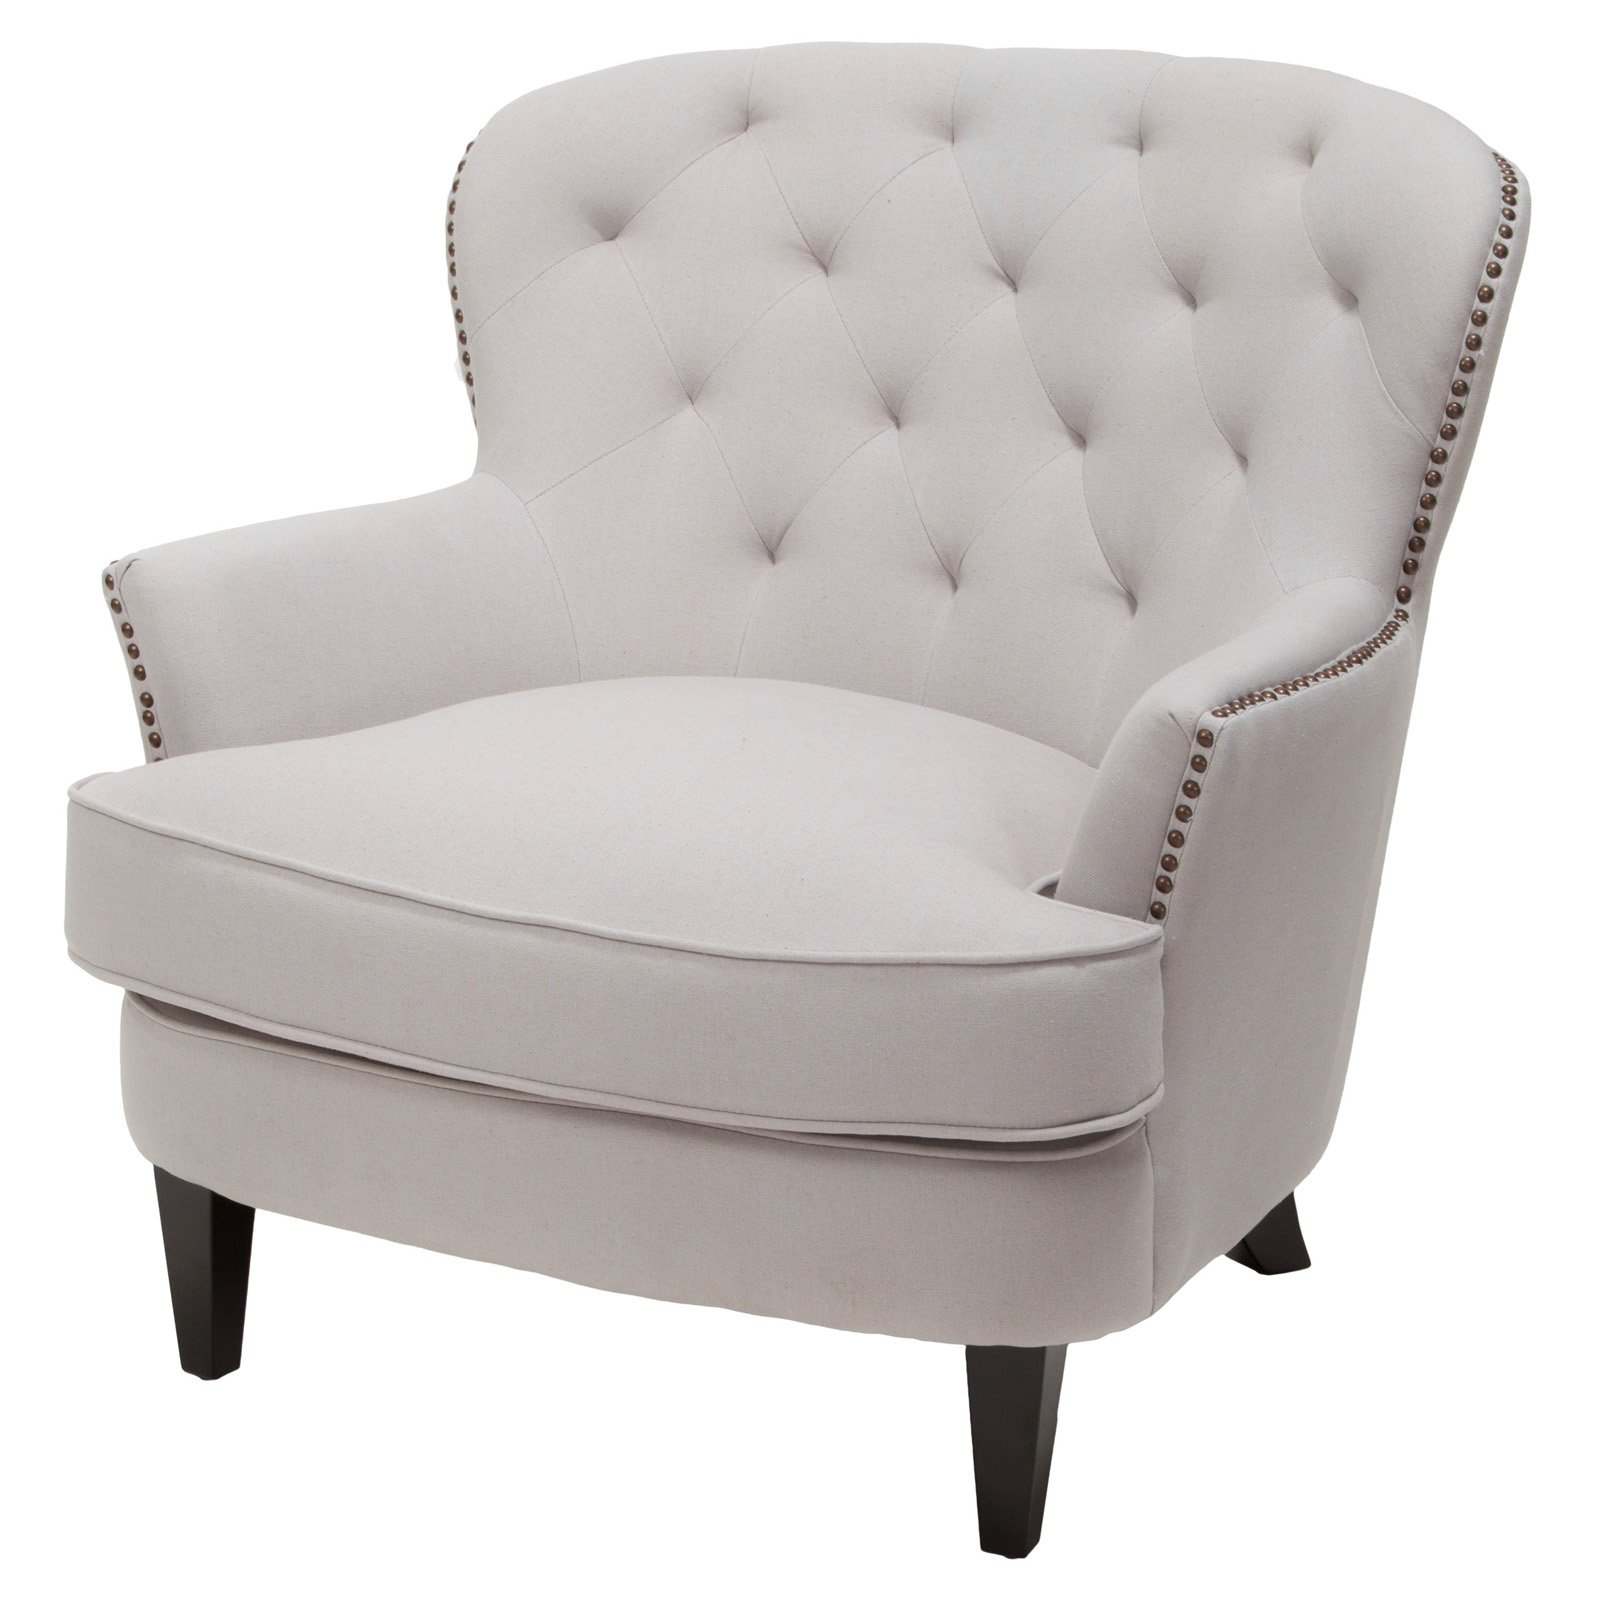 Best Selling Home Waldorf Diamond Tufted Club Chair by GDF Studio